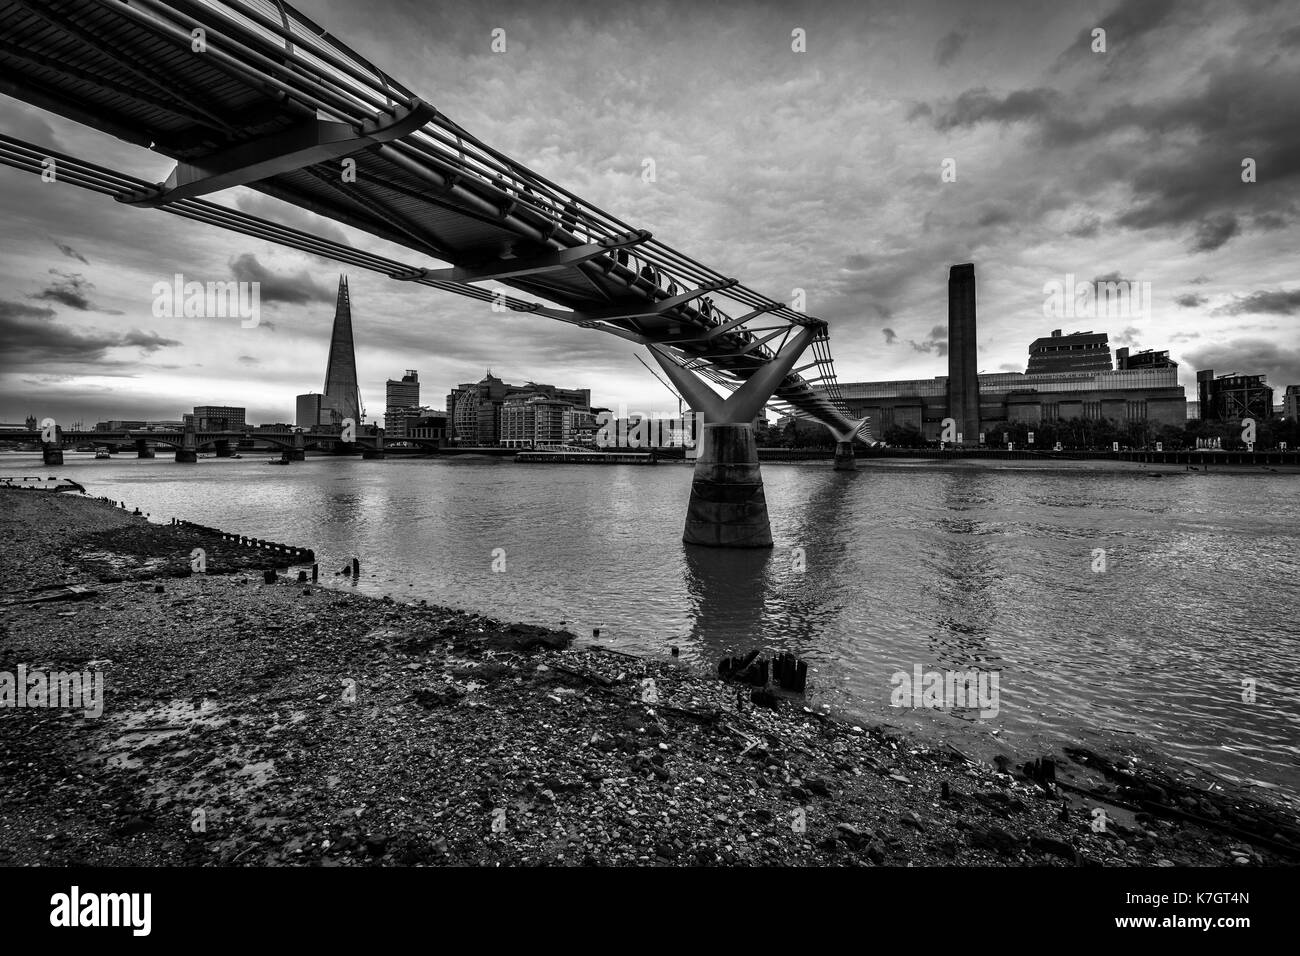 The Shard Building, Millennium Bridge and The Tate Modern Gallery on the River Thames at Low Tide. Stock Photo